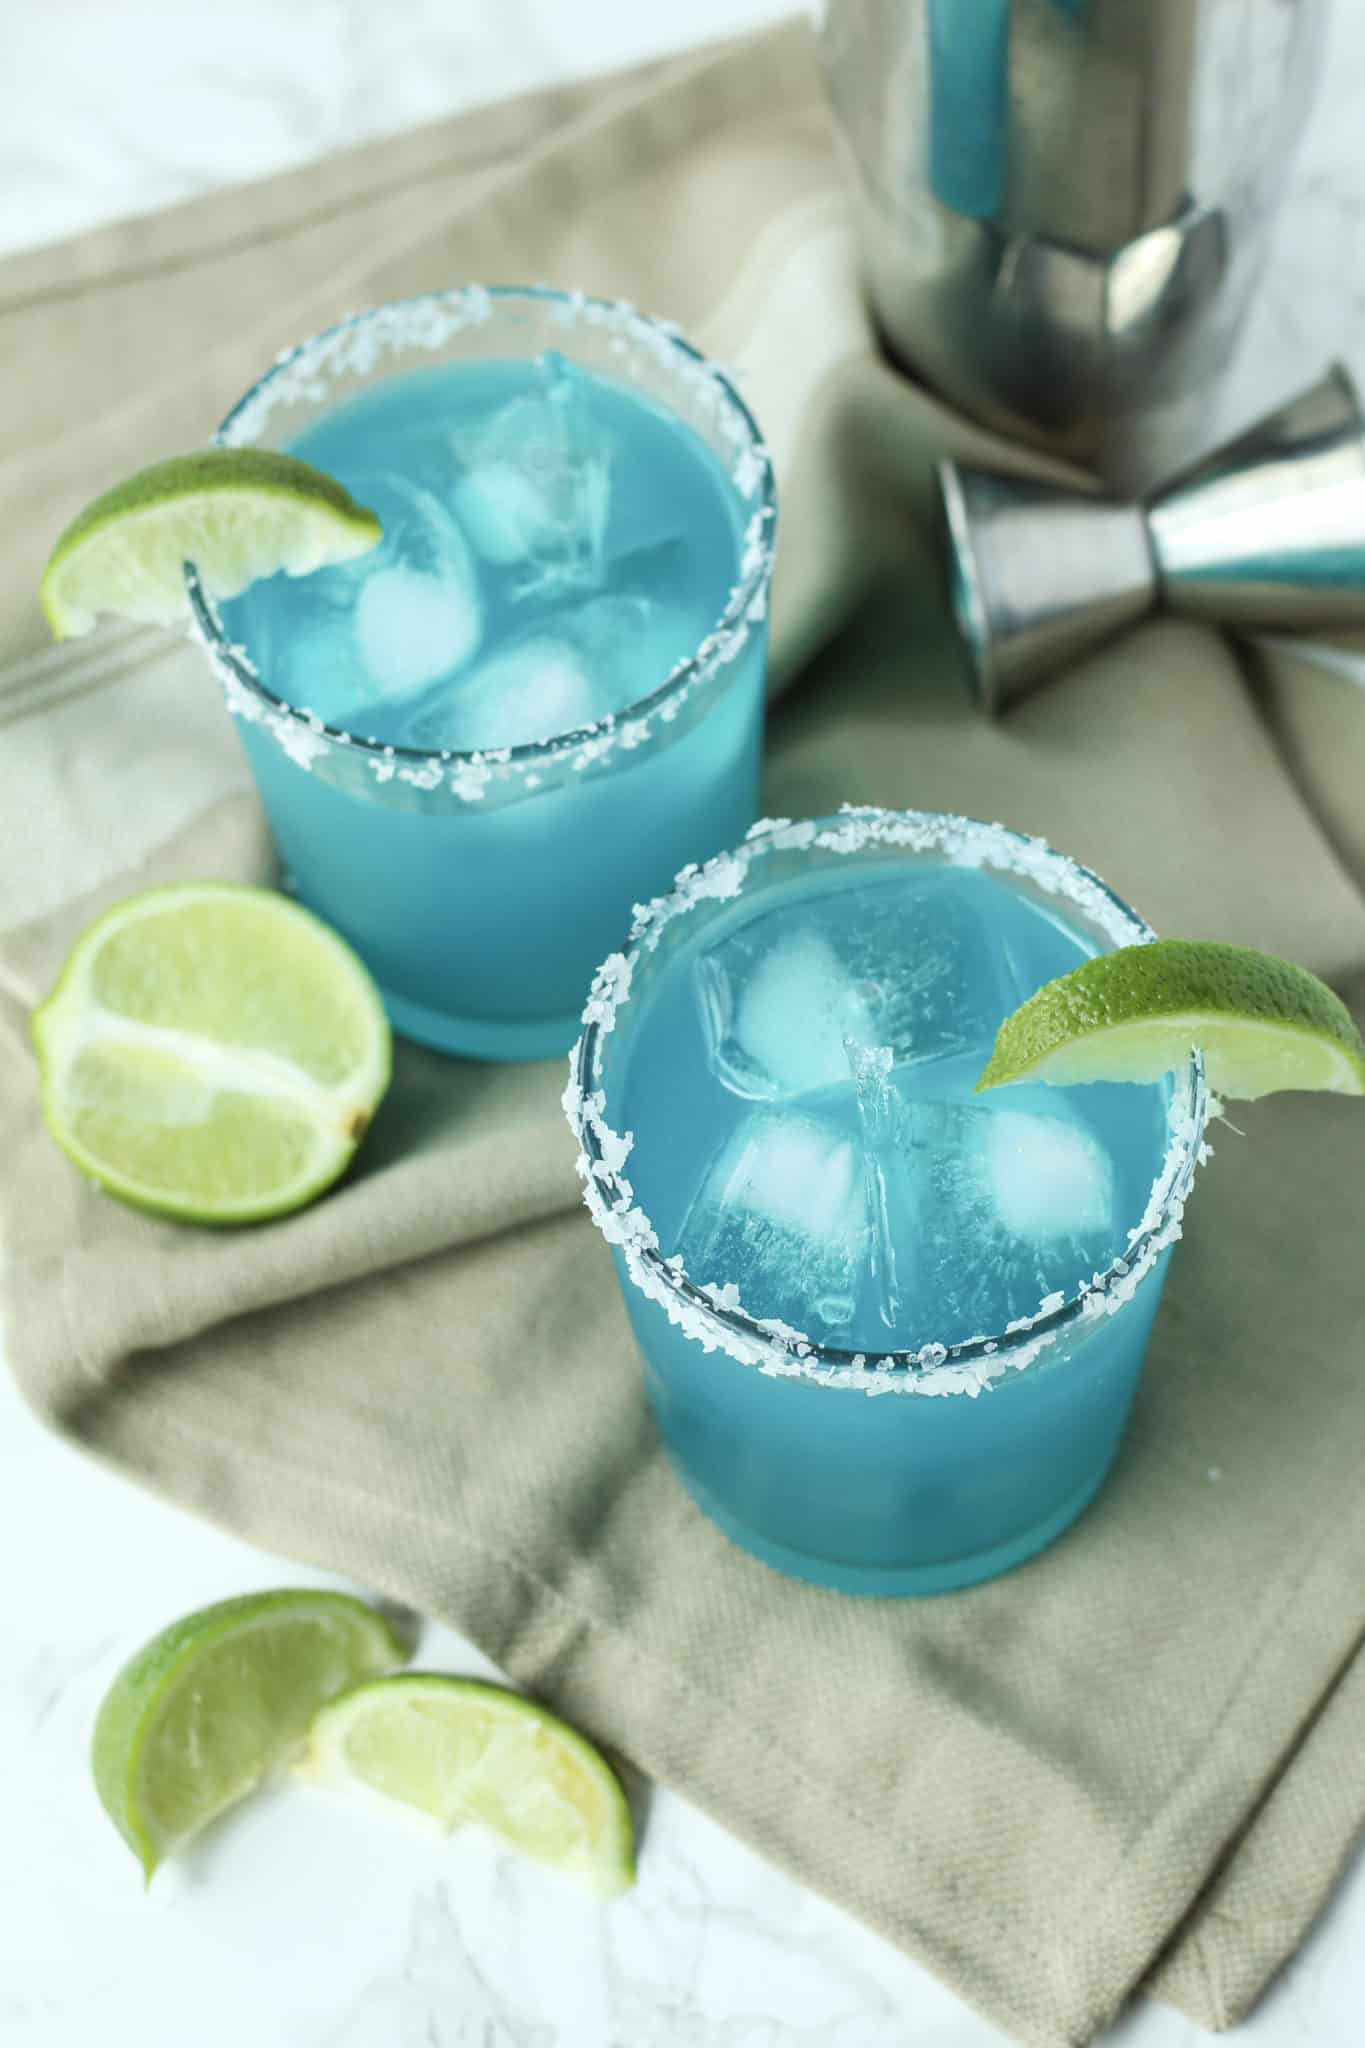 Two Blue Margaritas on a tan kitchen towel with lime slices around